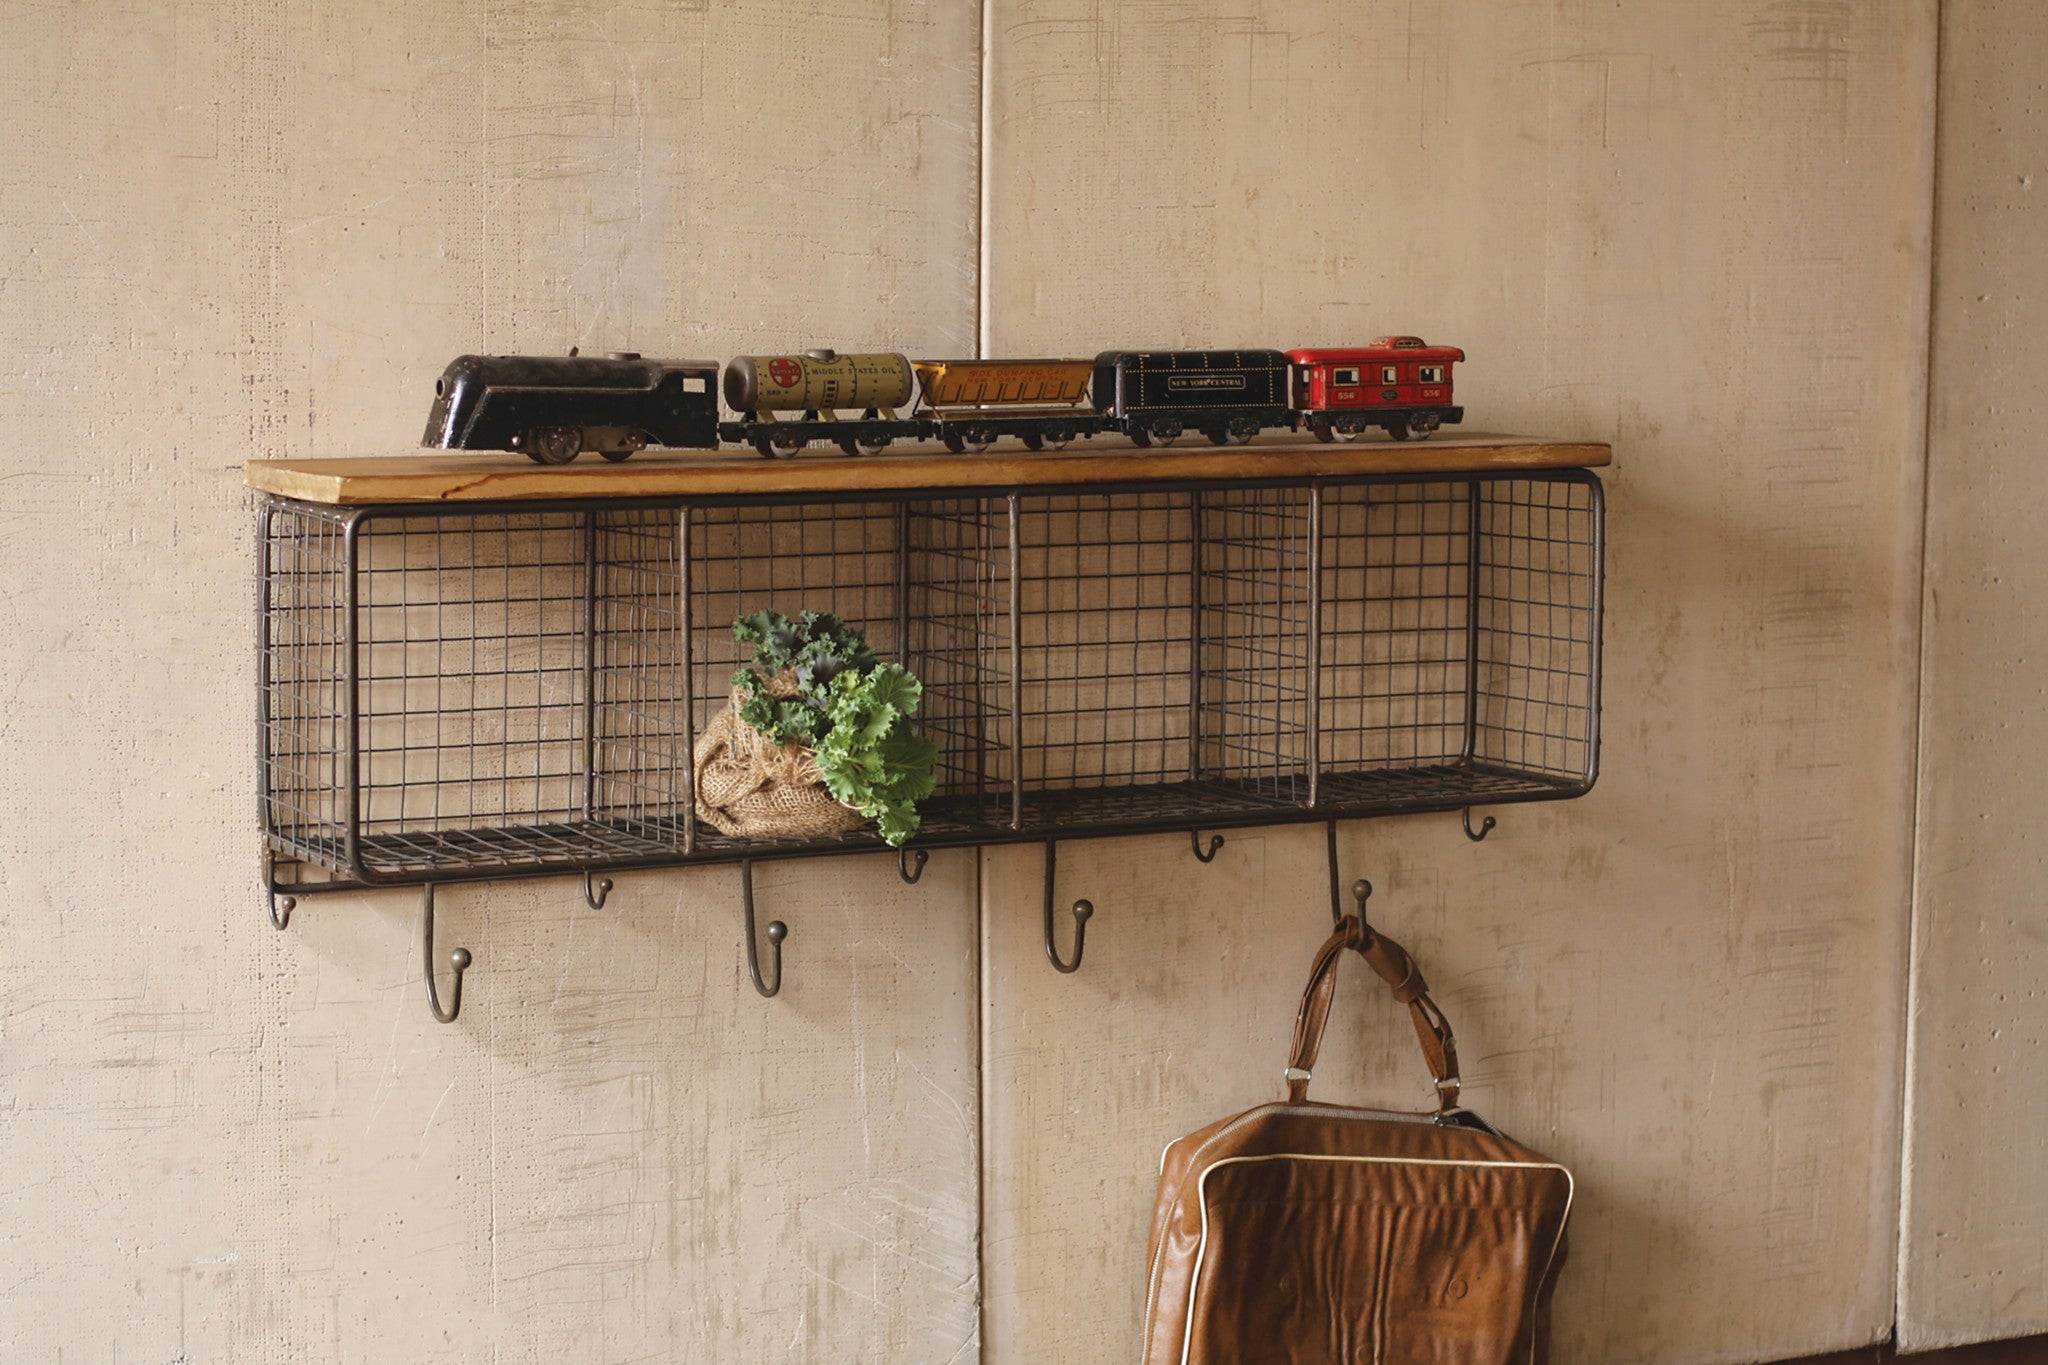 Industrial Modern Cage Wall Cubbies and Top Shelf